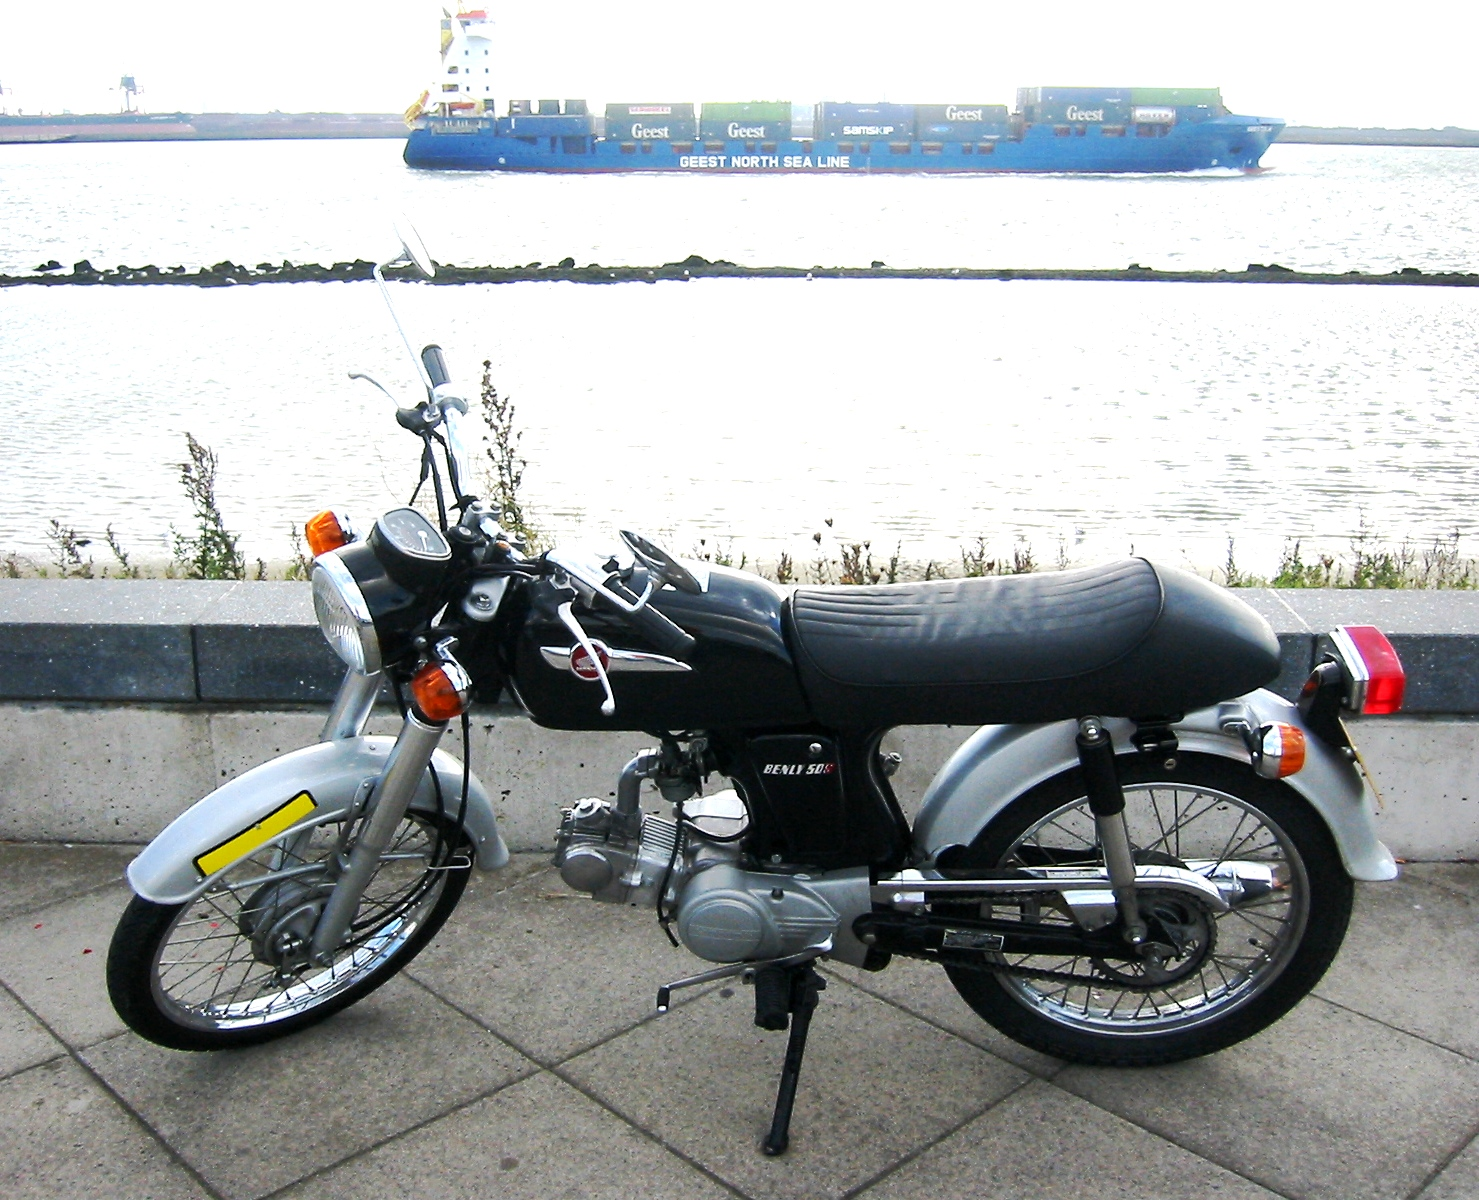 http://upload.wikimedia.org/wikipedia/commons/a/a7/Honda_Benly_50S.jpg